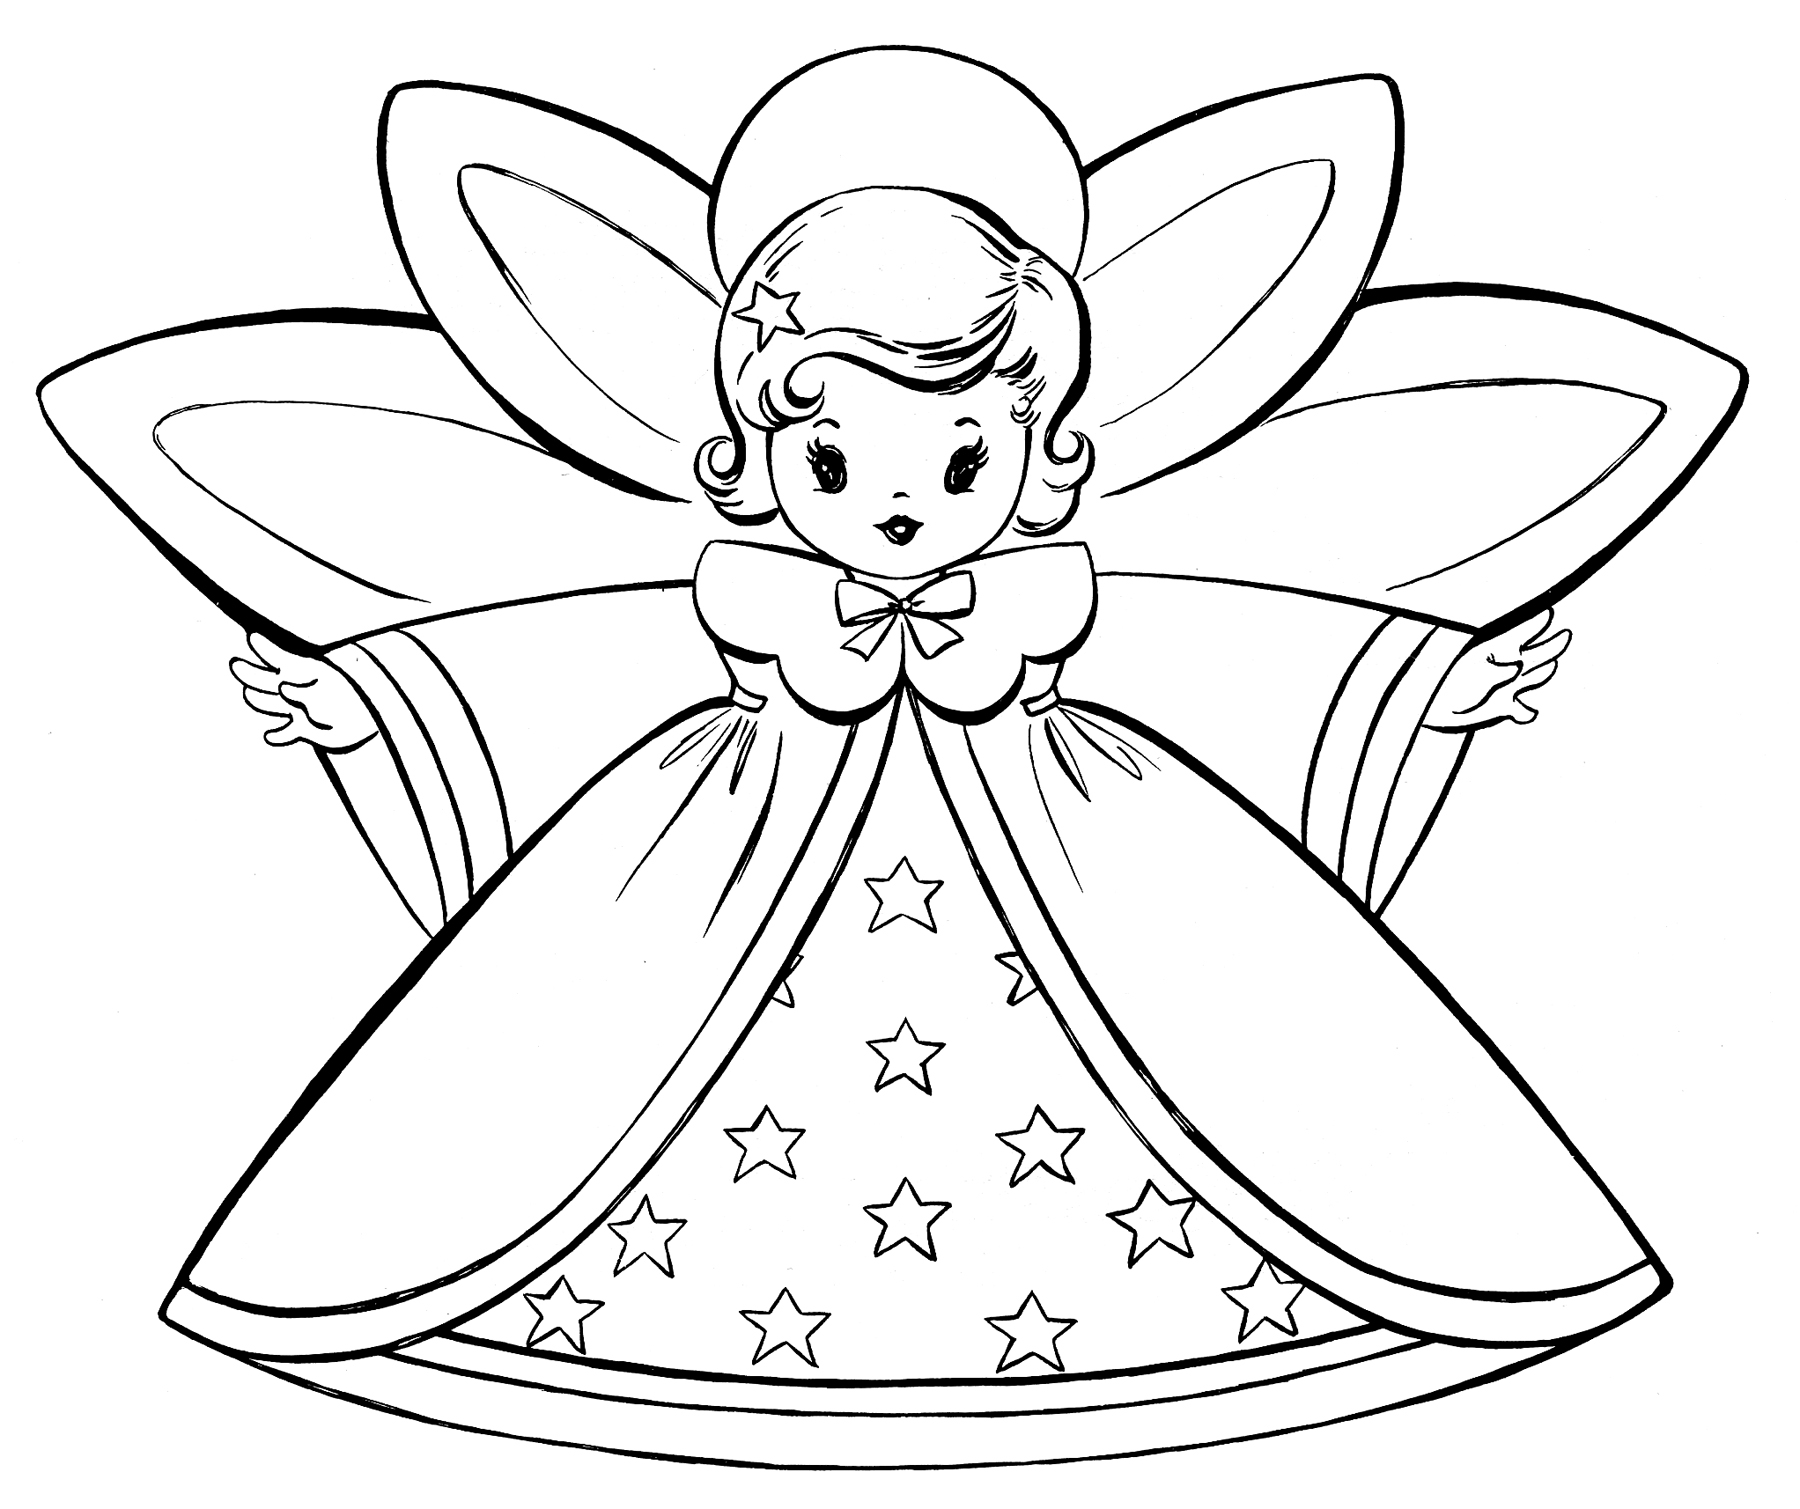 Free Christmas Coloring Pages.